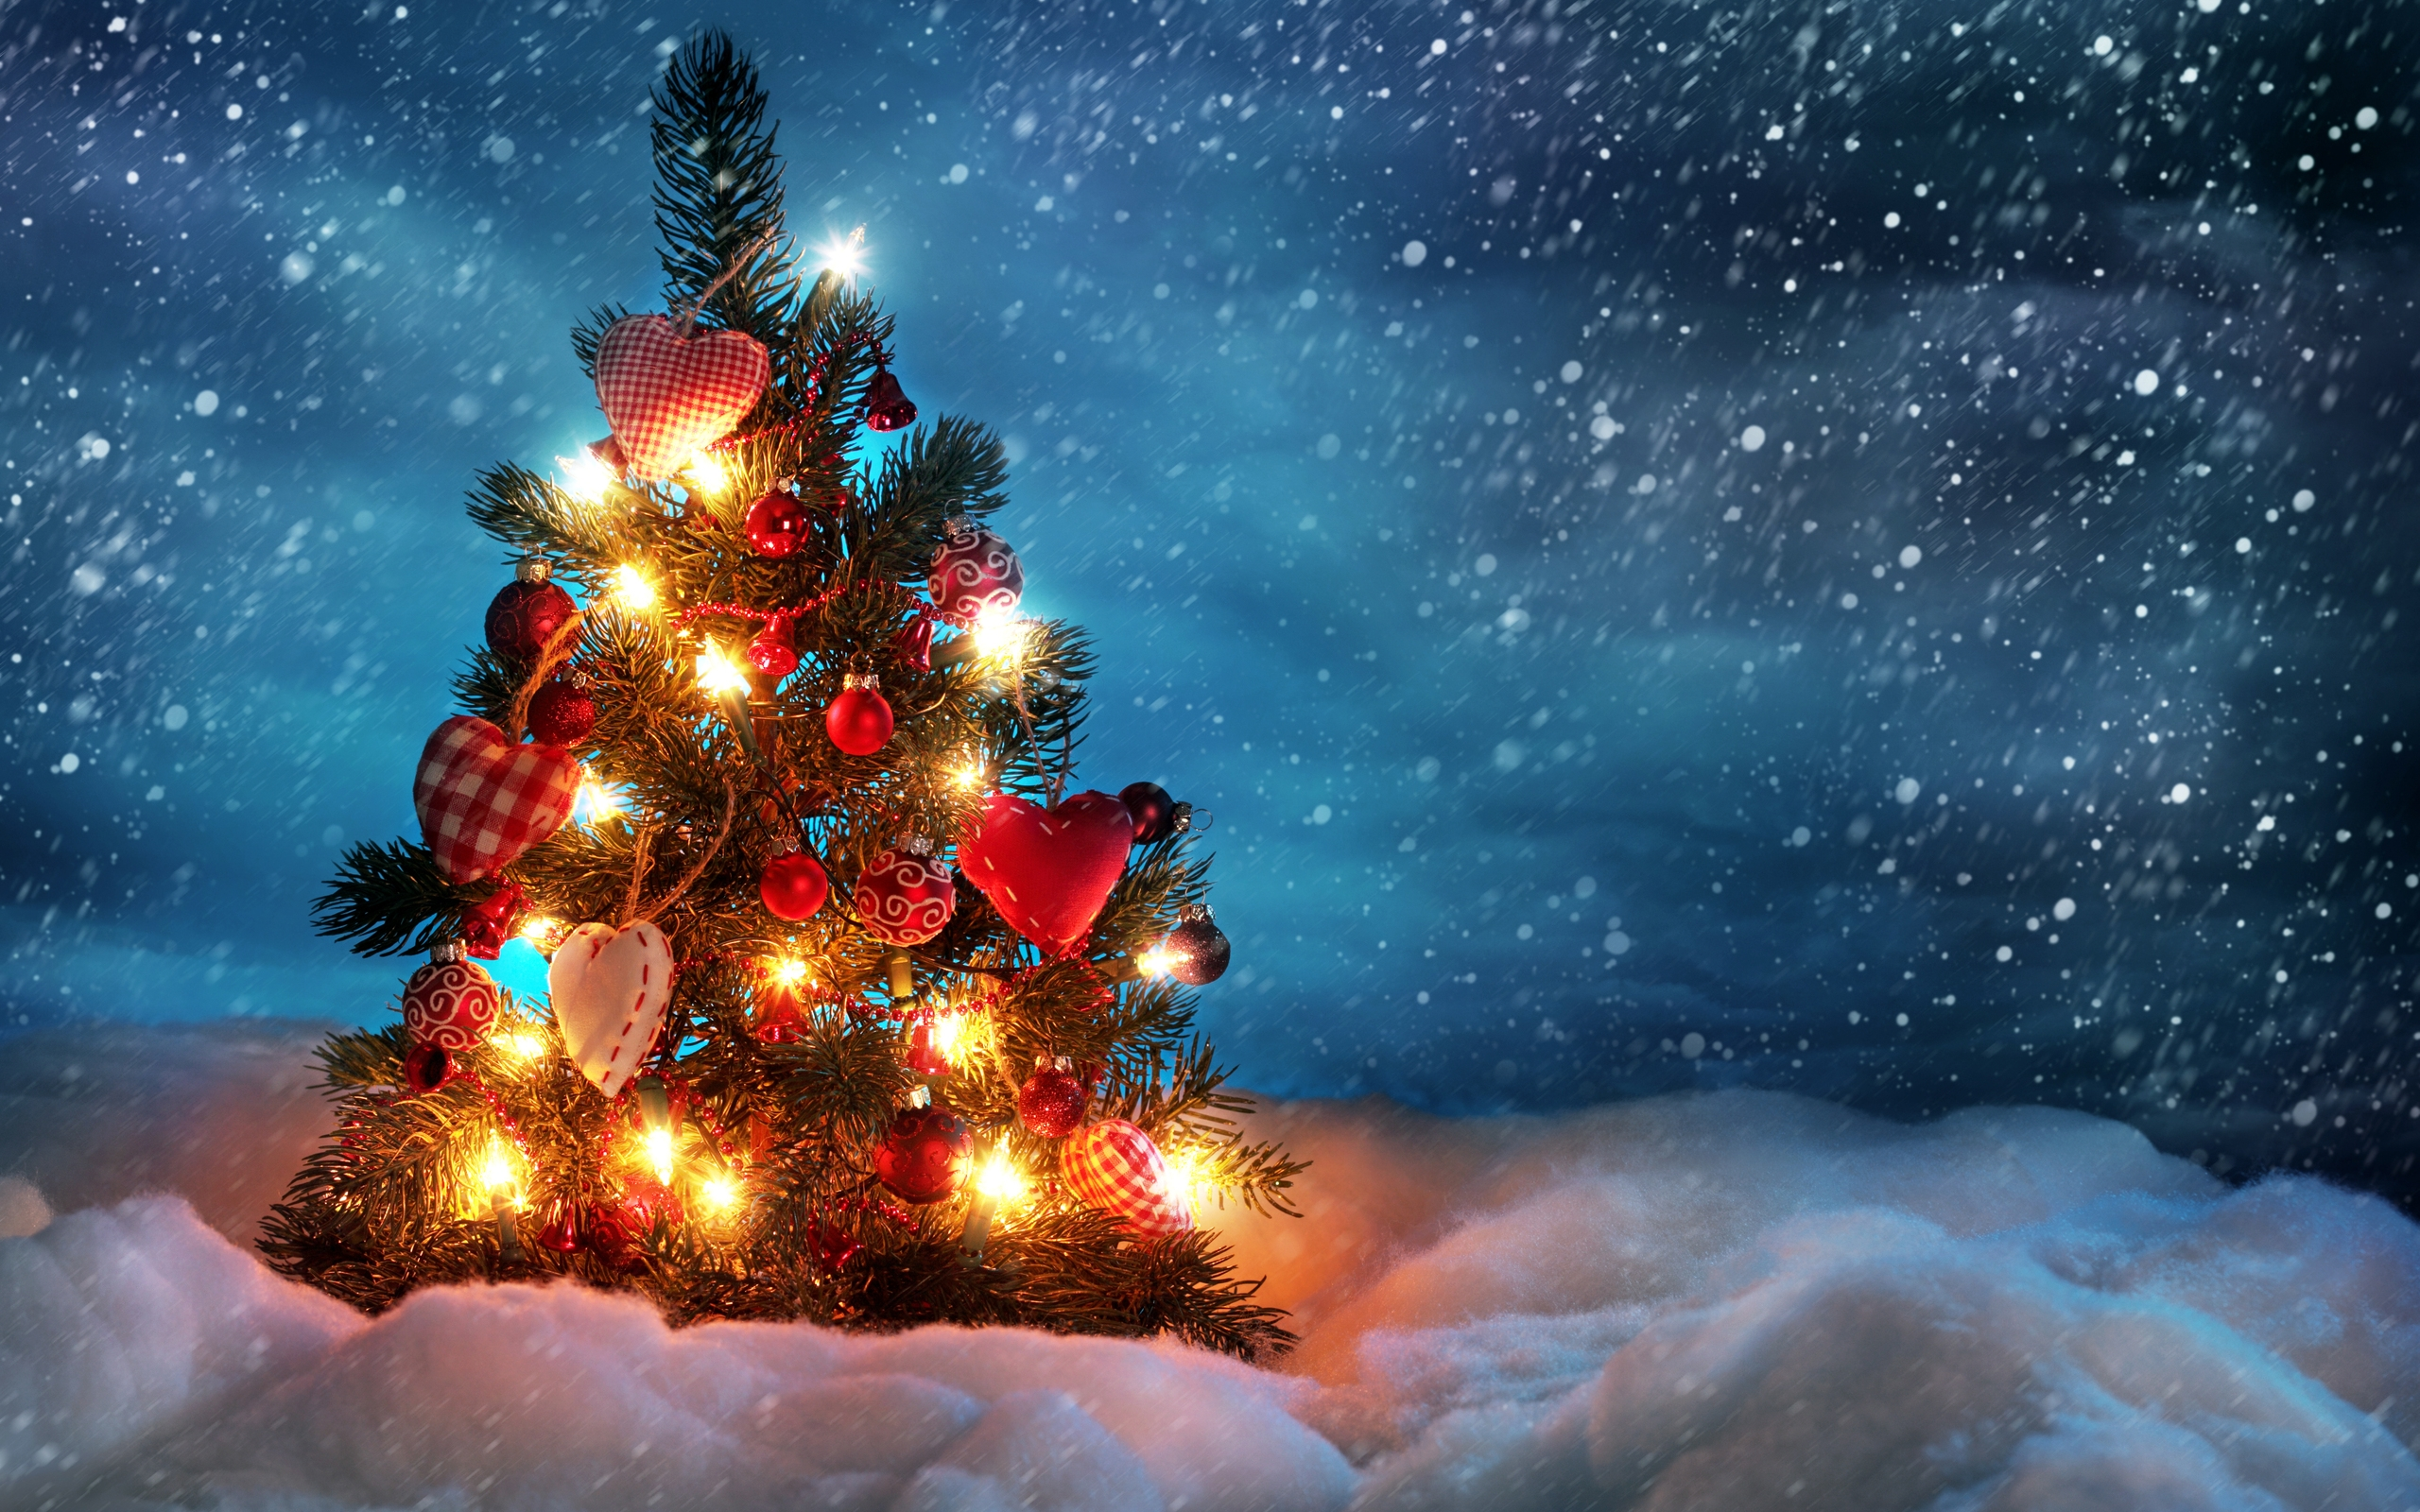 2560x1440 Amazing Christmas tree YouTube Channel Cover